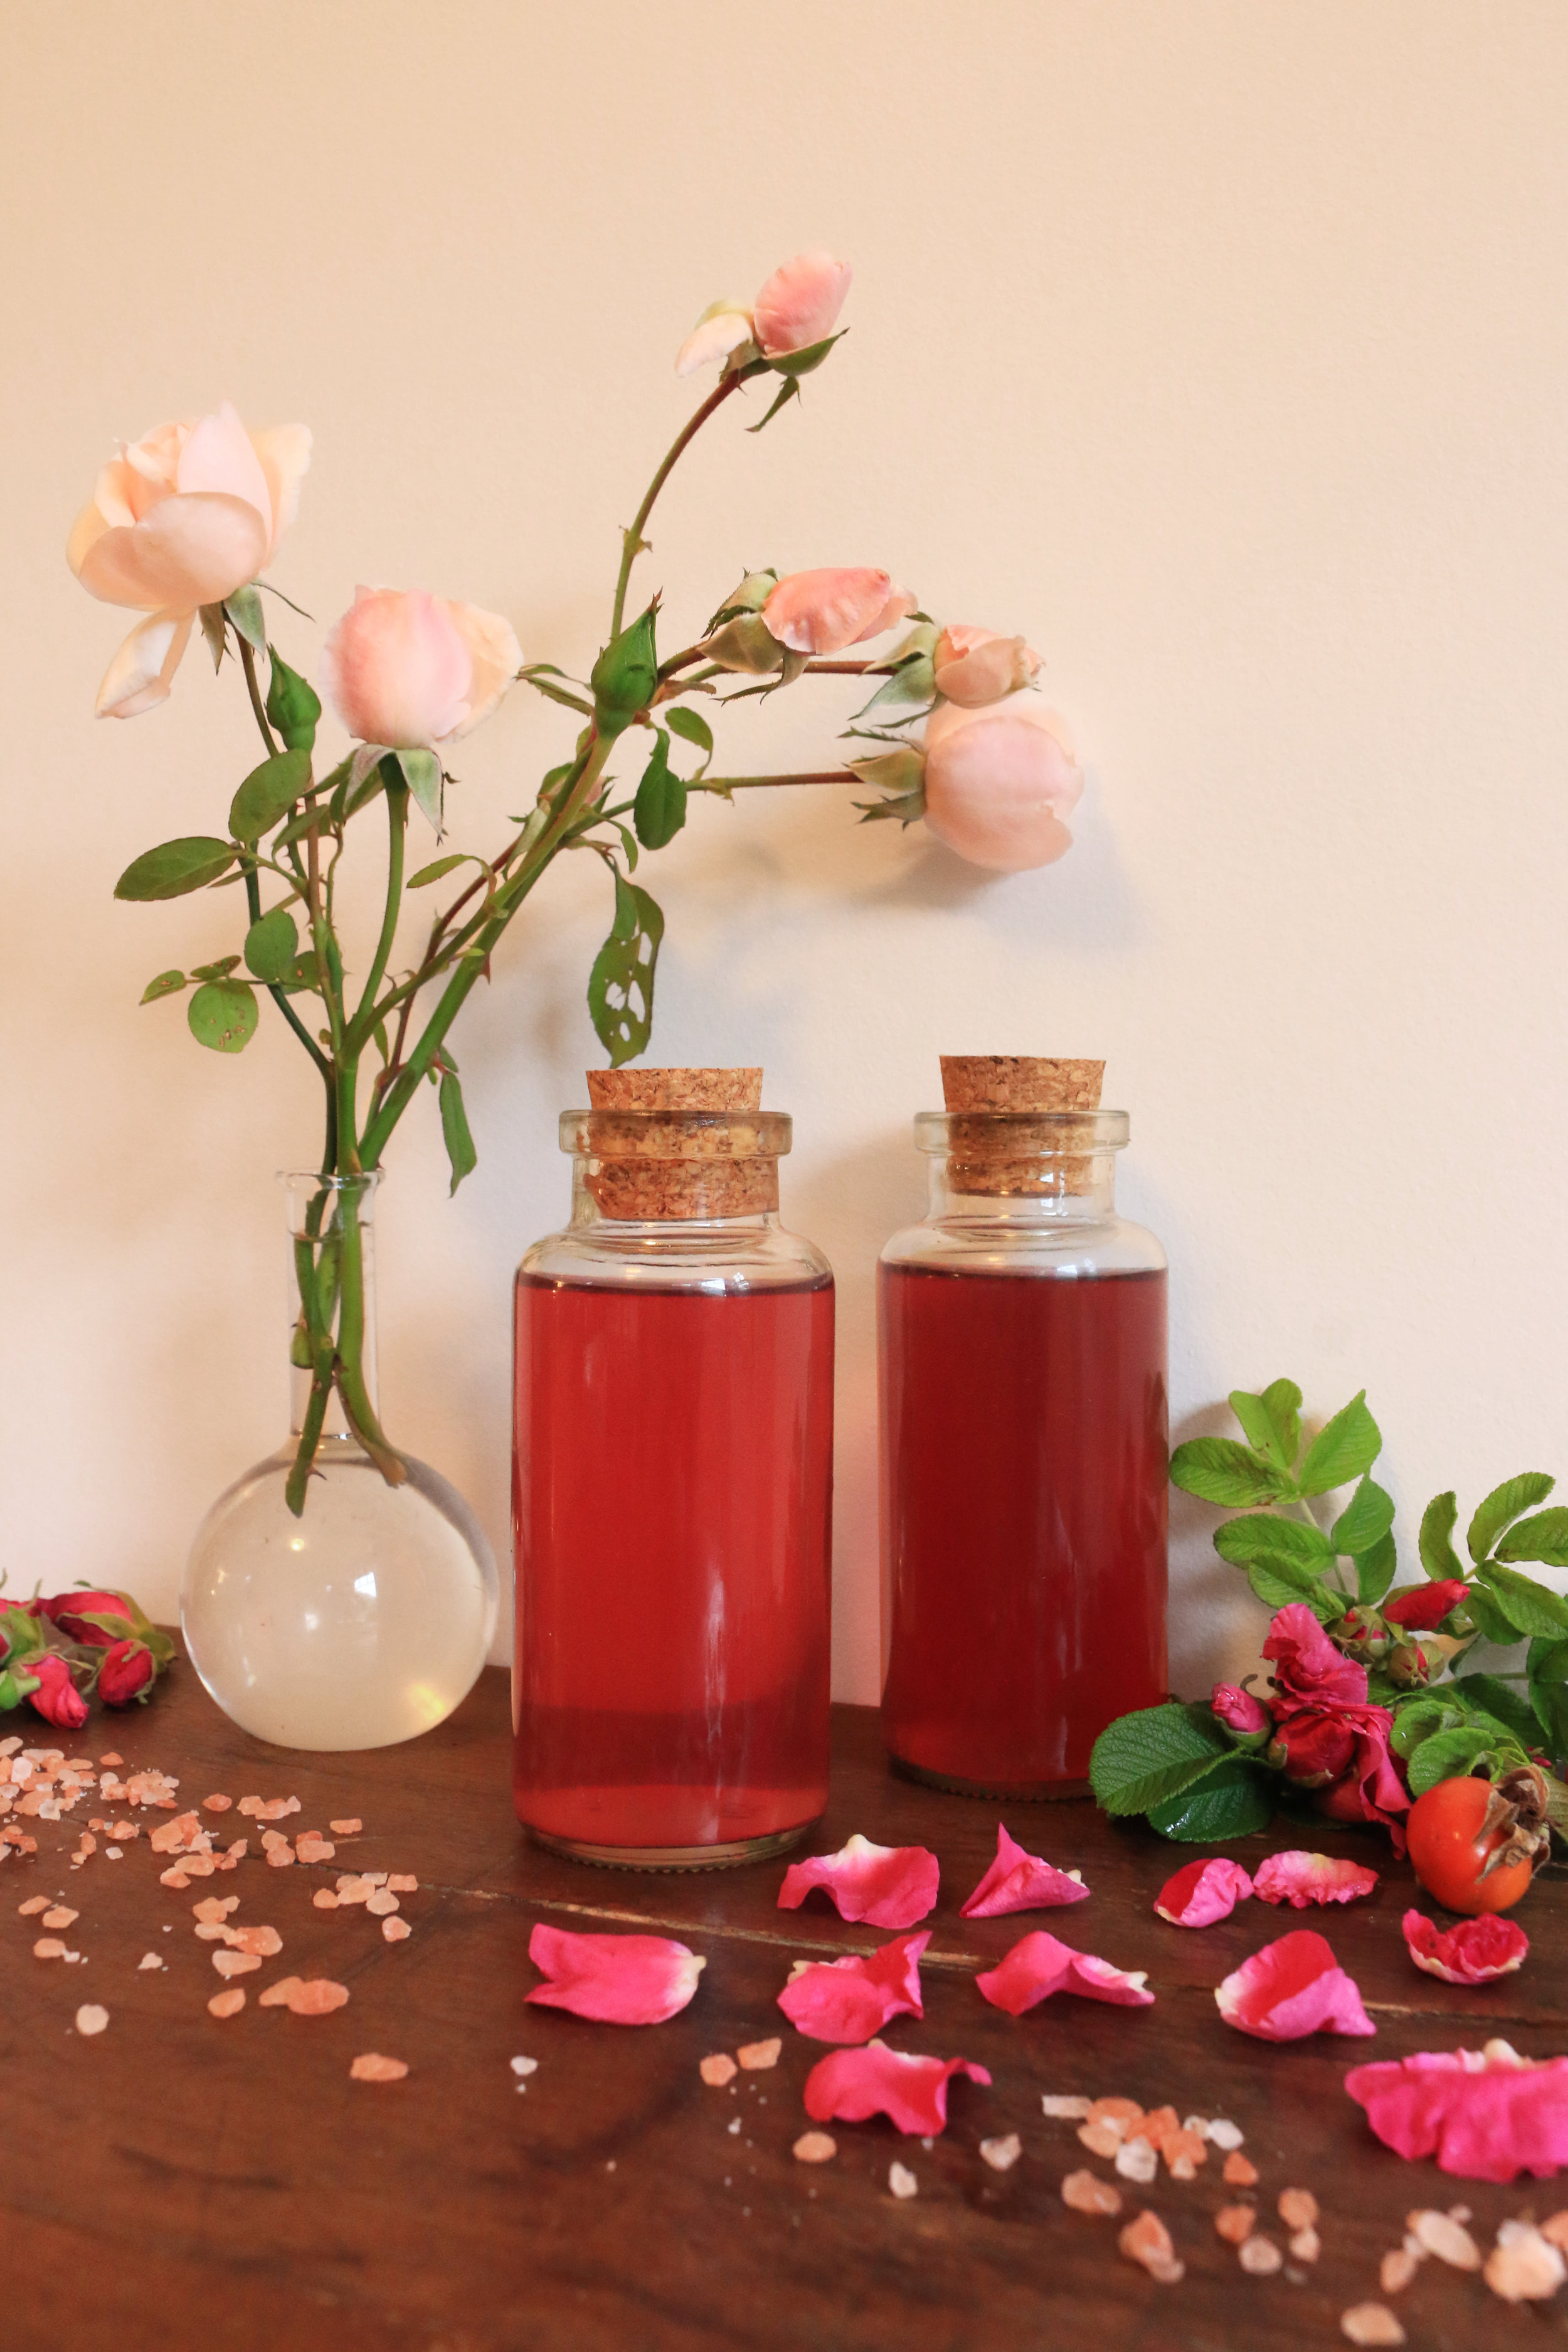 Homemade-Rose-Toner-culinarywitch